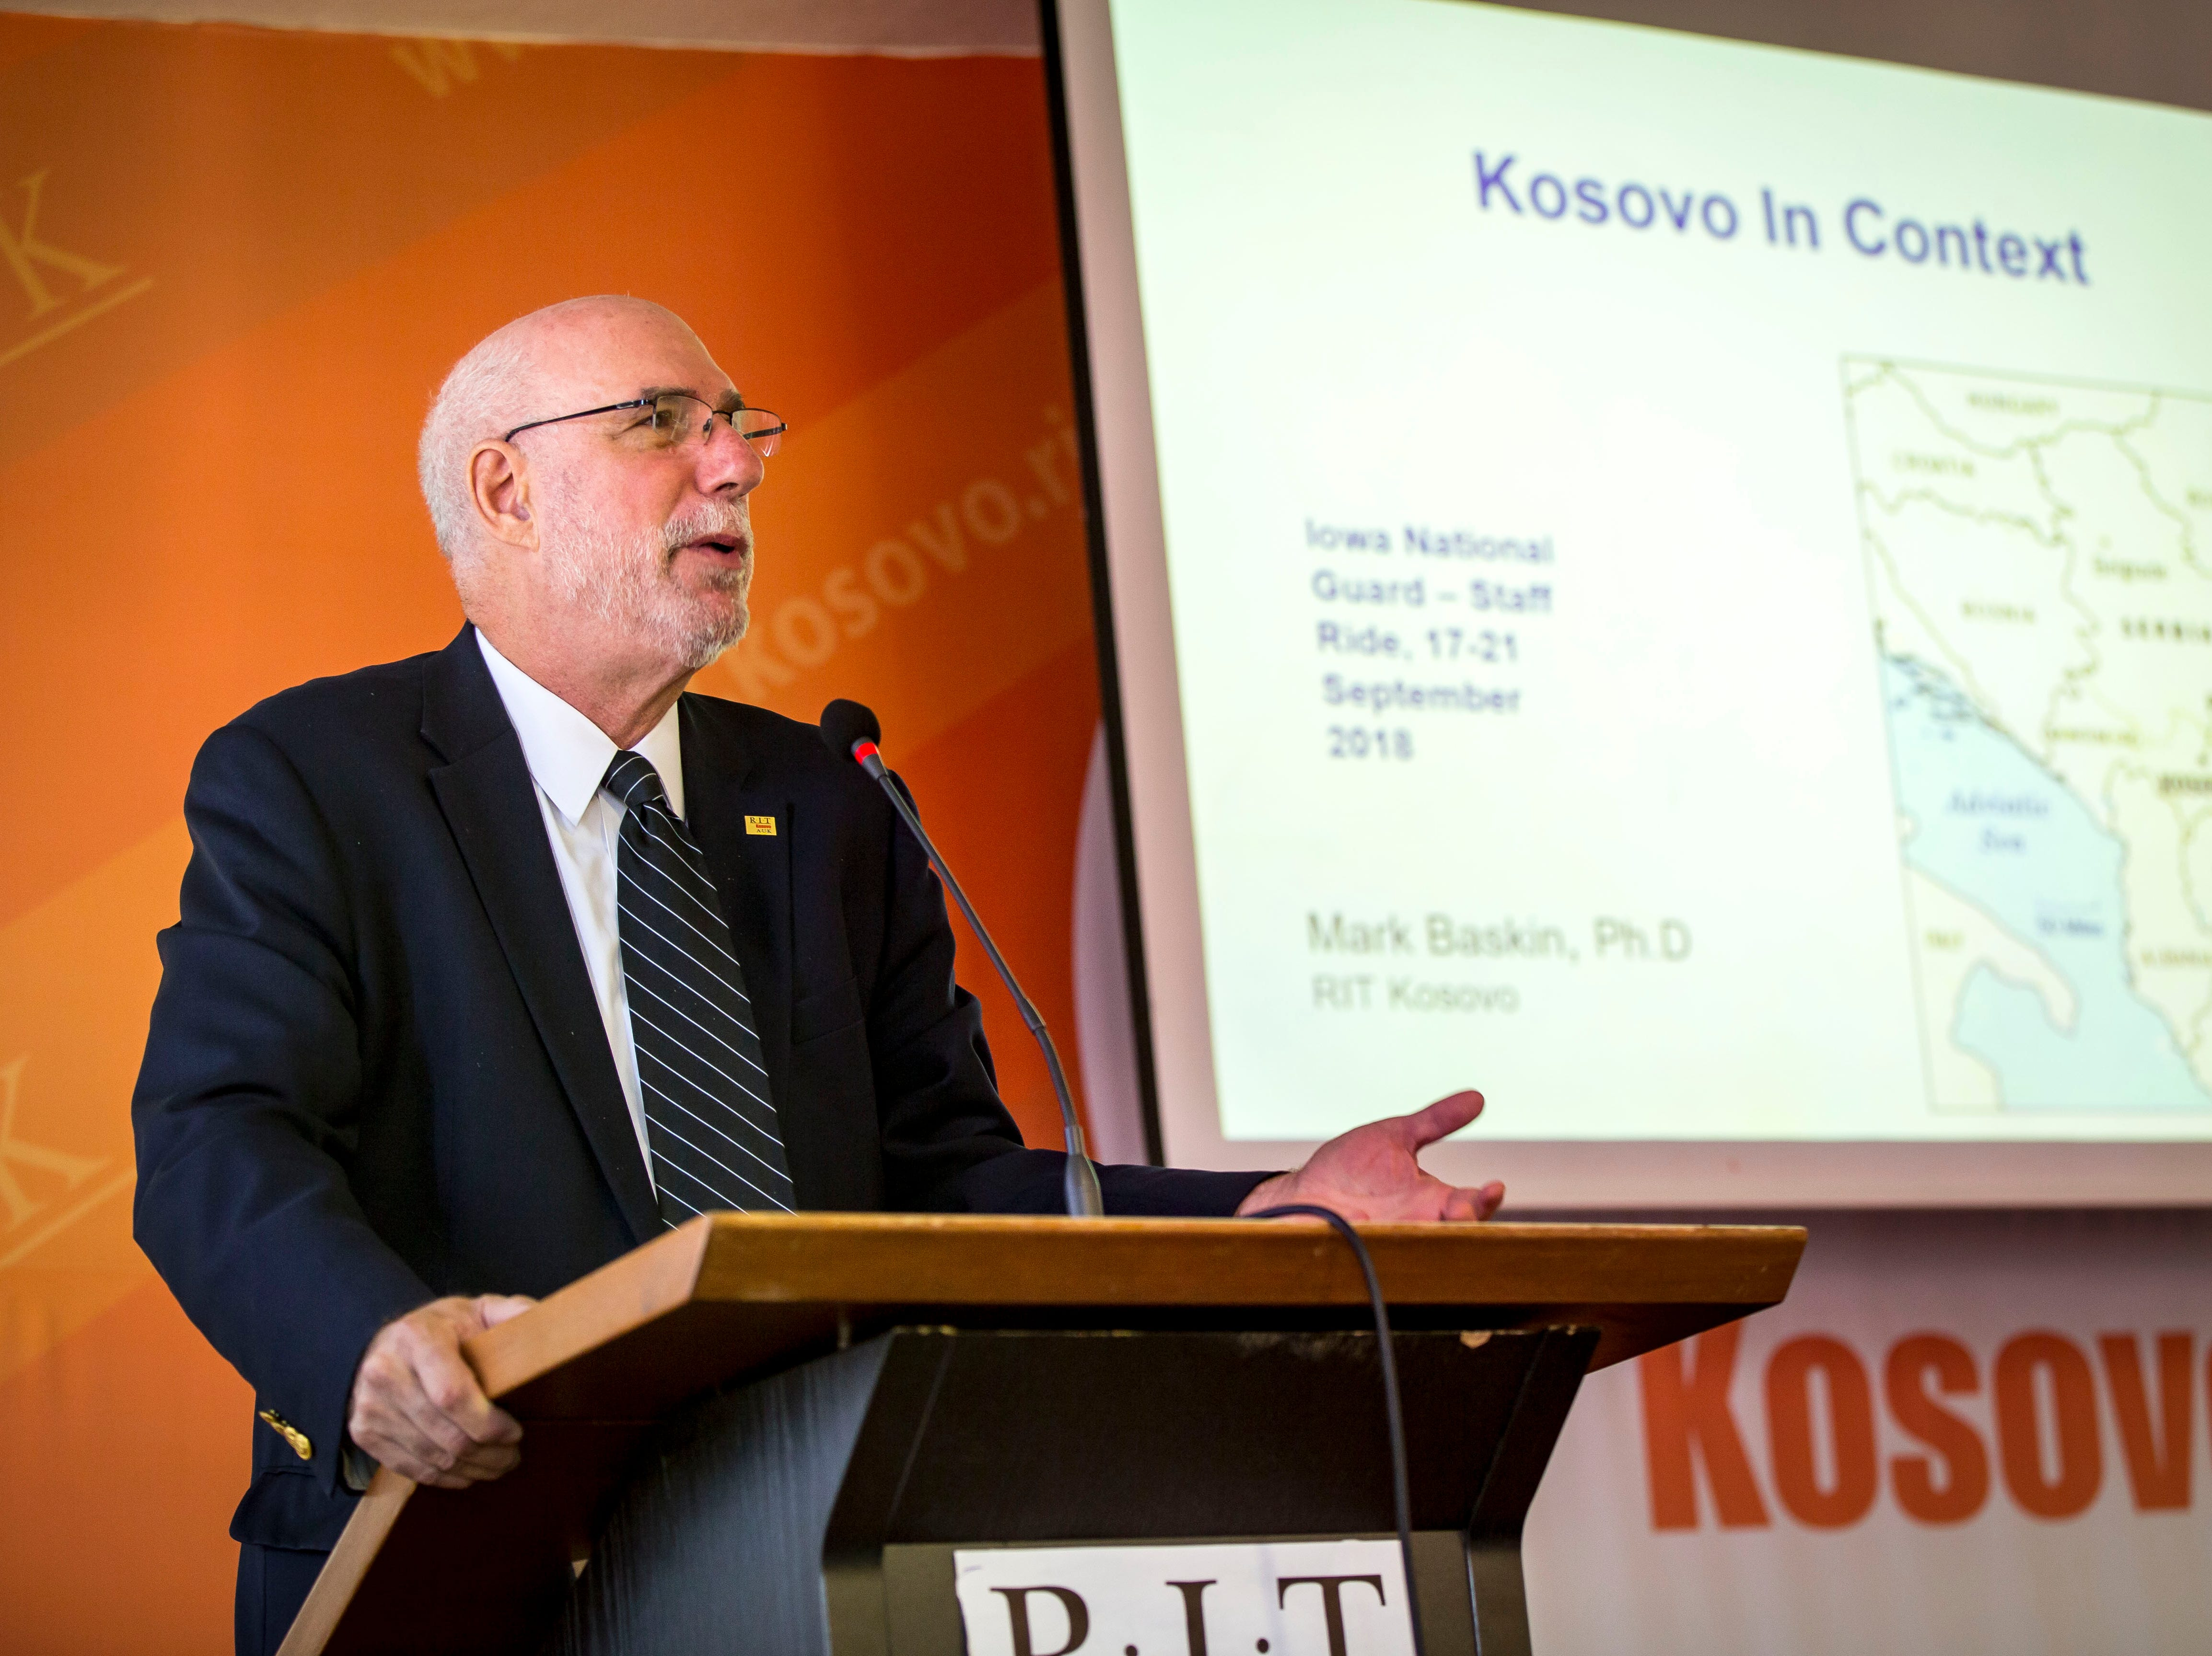 Mark A. Baskin, Ph.D, who teaches courses in international relations and public policy at RIT KosovoÊ(A.U.K)., speaks with Iowa National Guardsman, in Pristina, Kosovo, Tuesday, Sept. 18, 2018. Dr. Baskin had served as Chief of Party of the Kosovo Transitional Leadership.